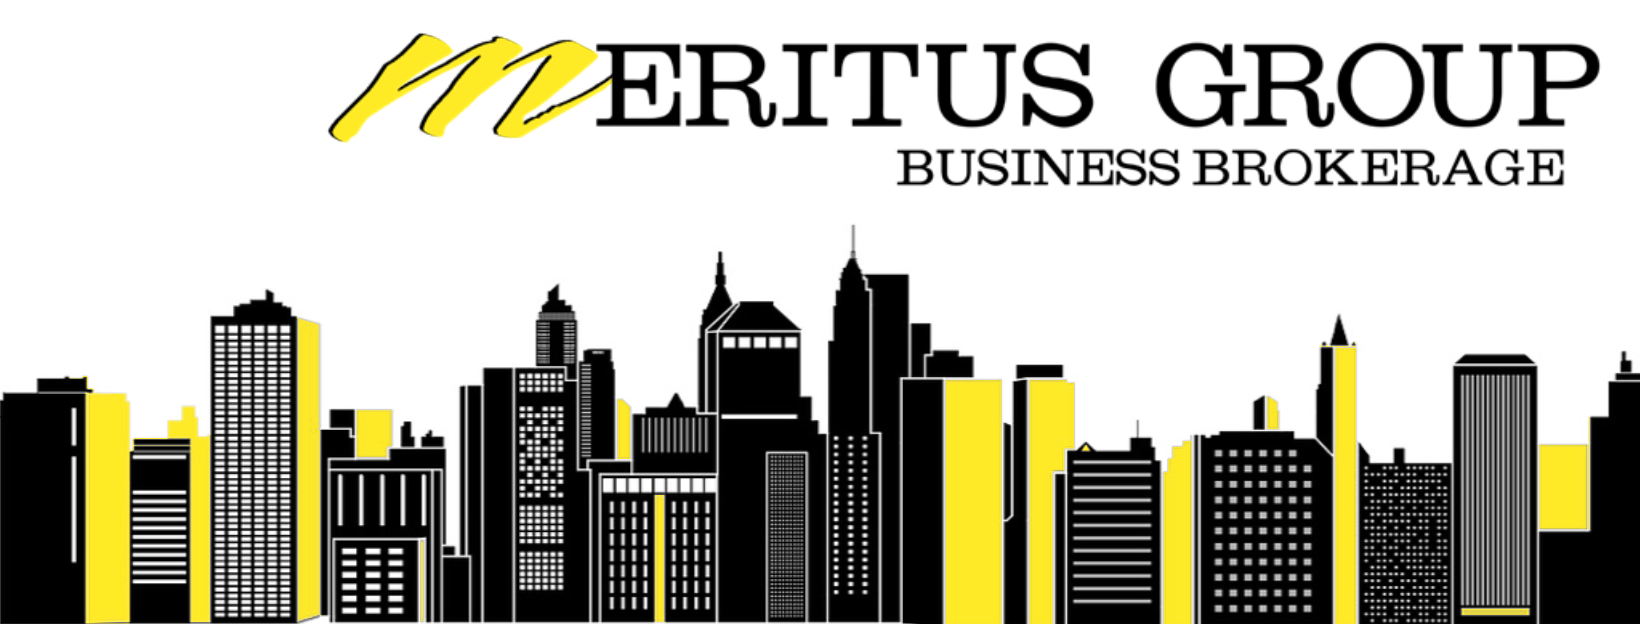 Sioux Falls Business Brokerage